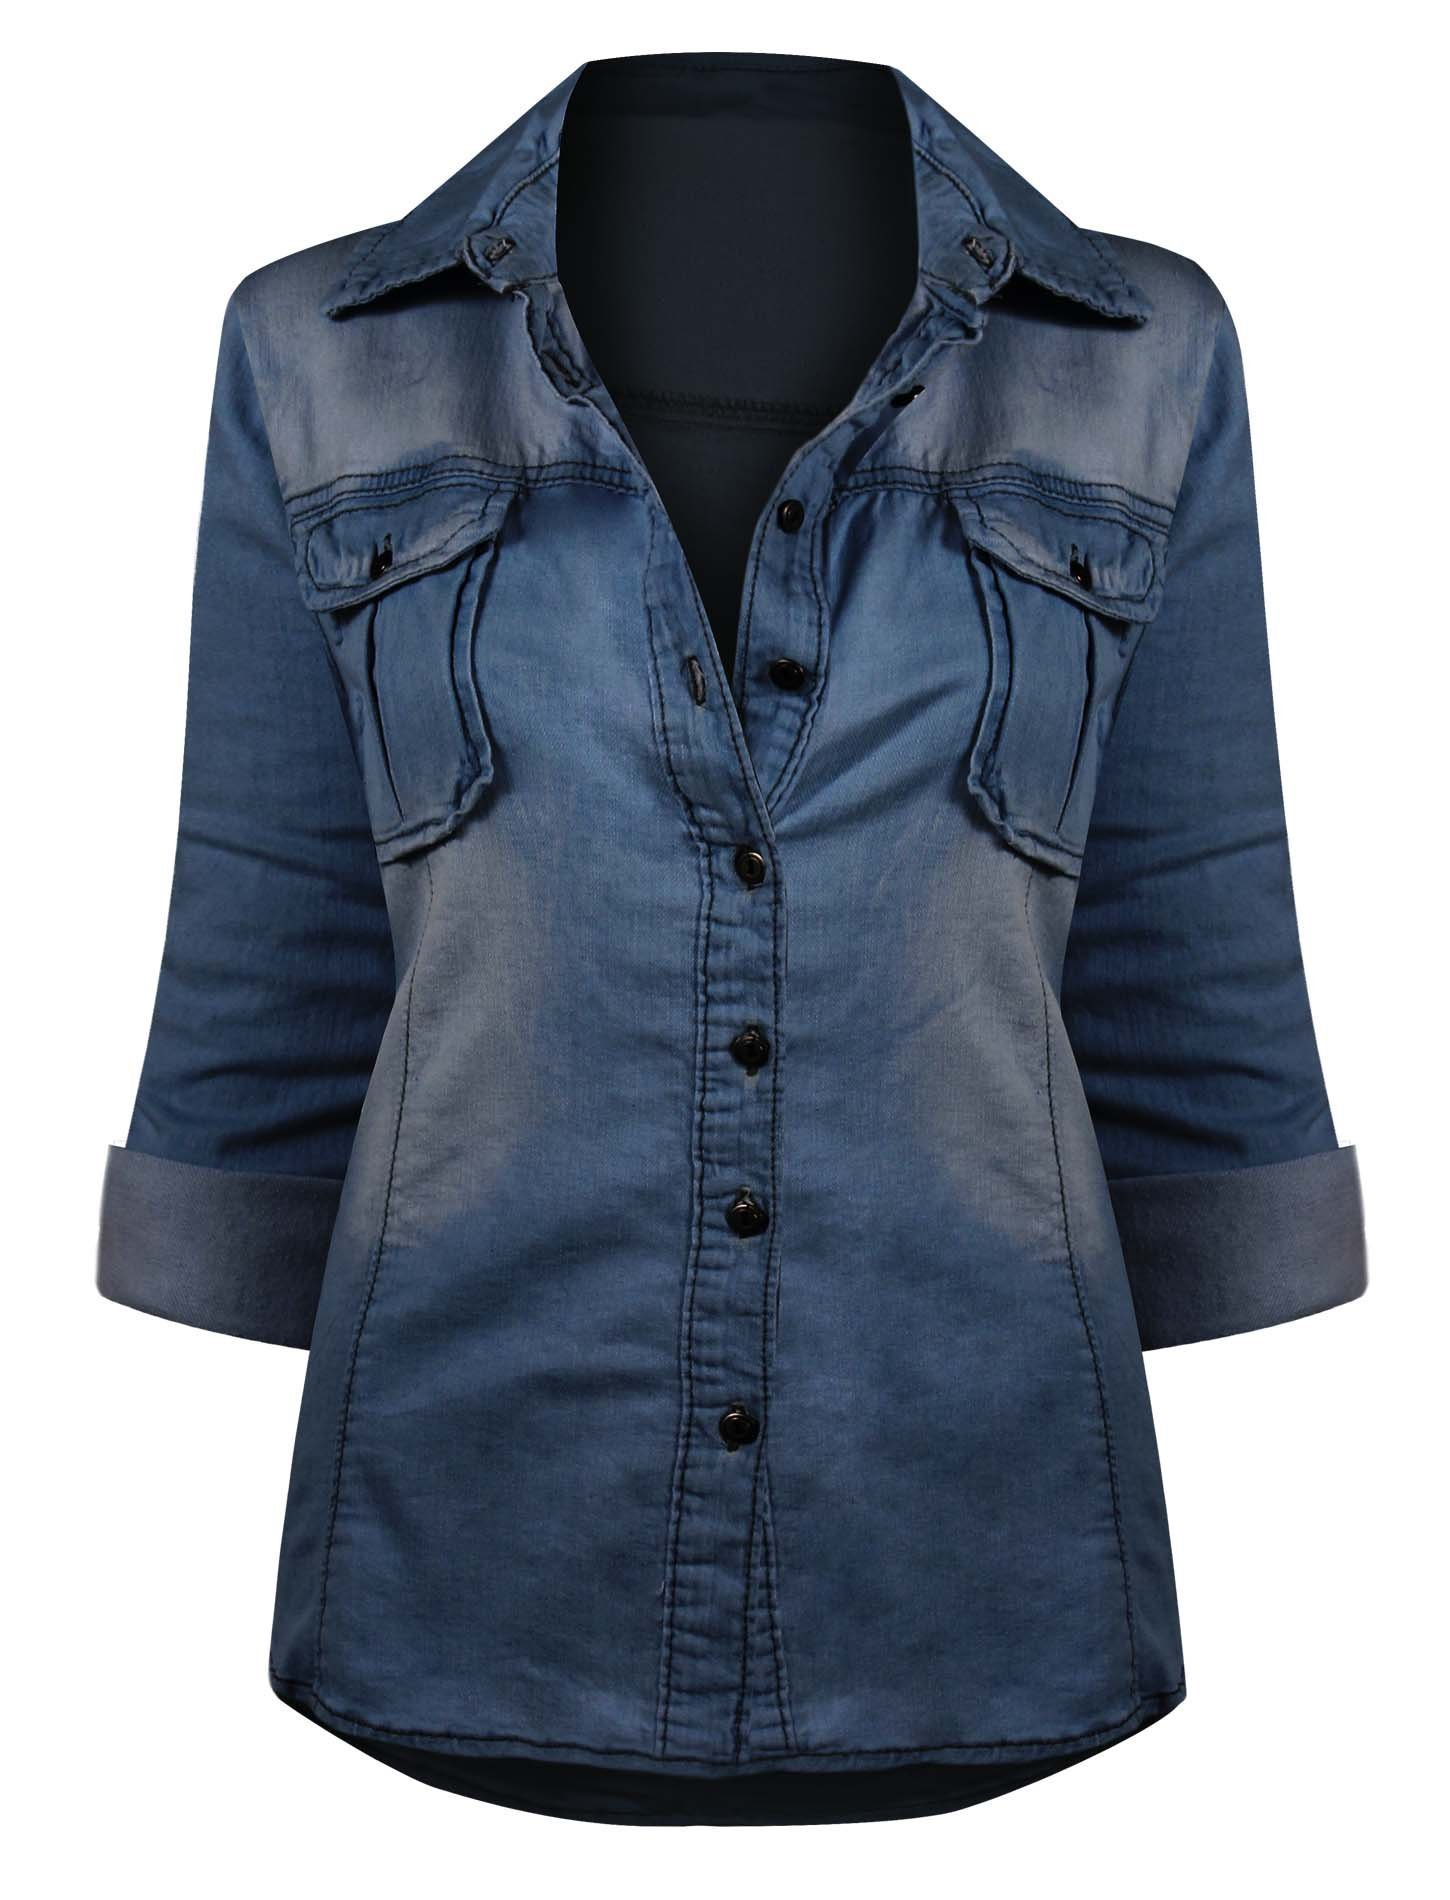 4b8e85349 HOT FROM HOLLYWOOD Women's Button Down Roll up Sleeve Classic Denim Shirt  Tops